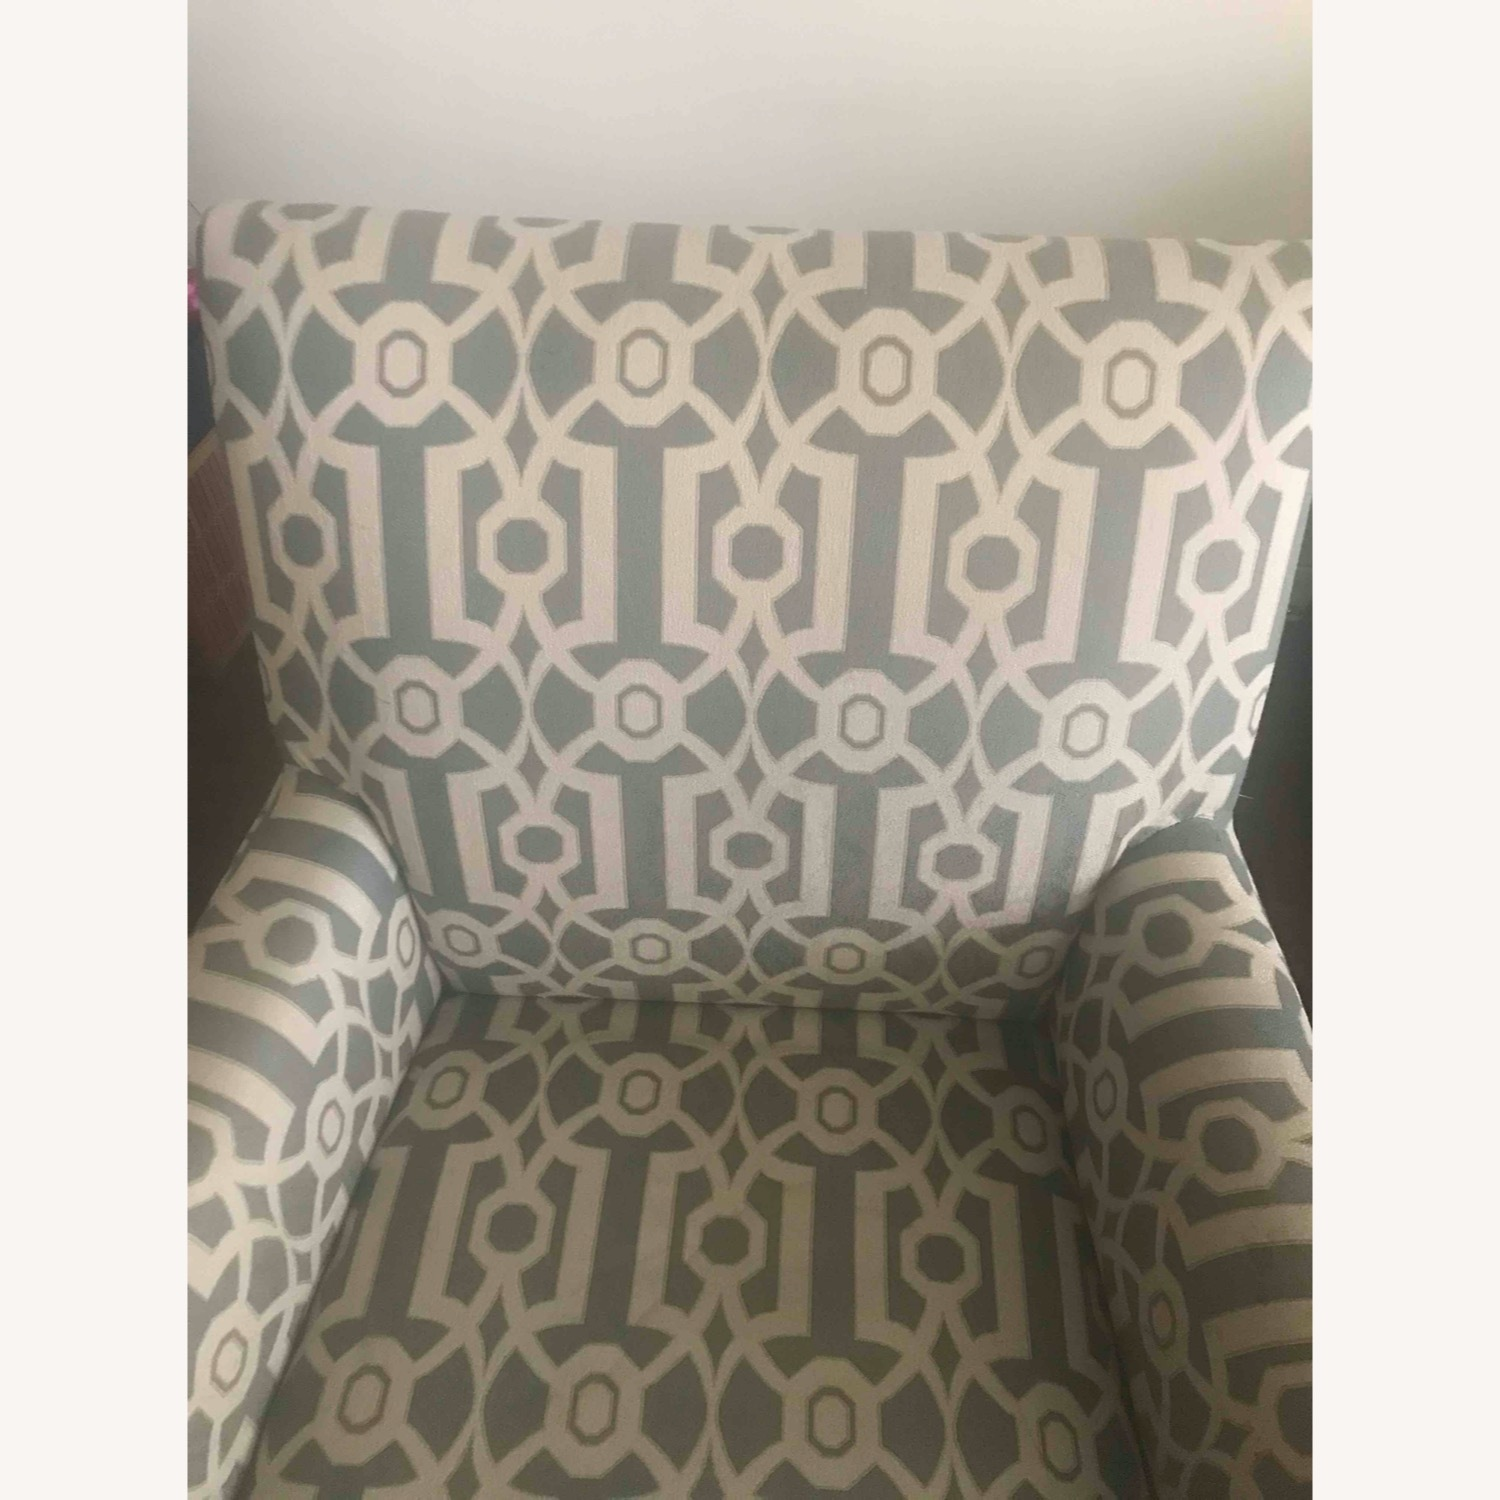 Pier 1 Imports Teal Modern Accent Chair - image-6